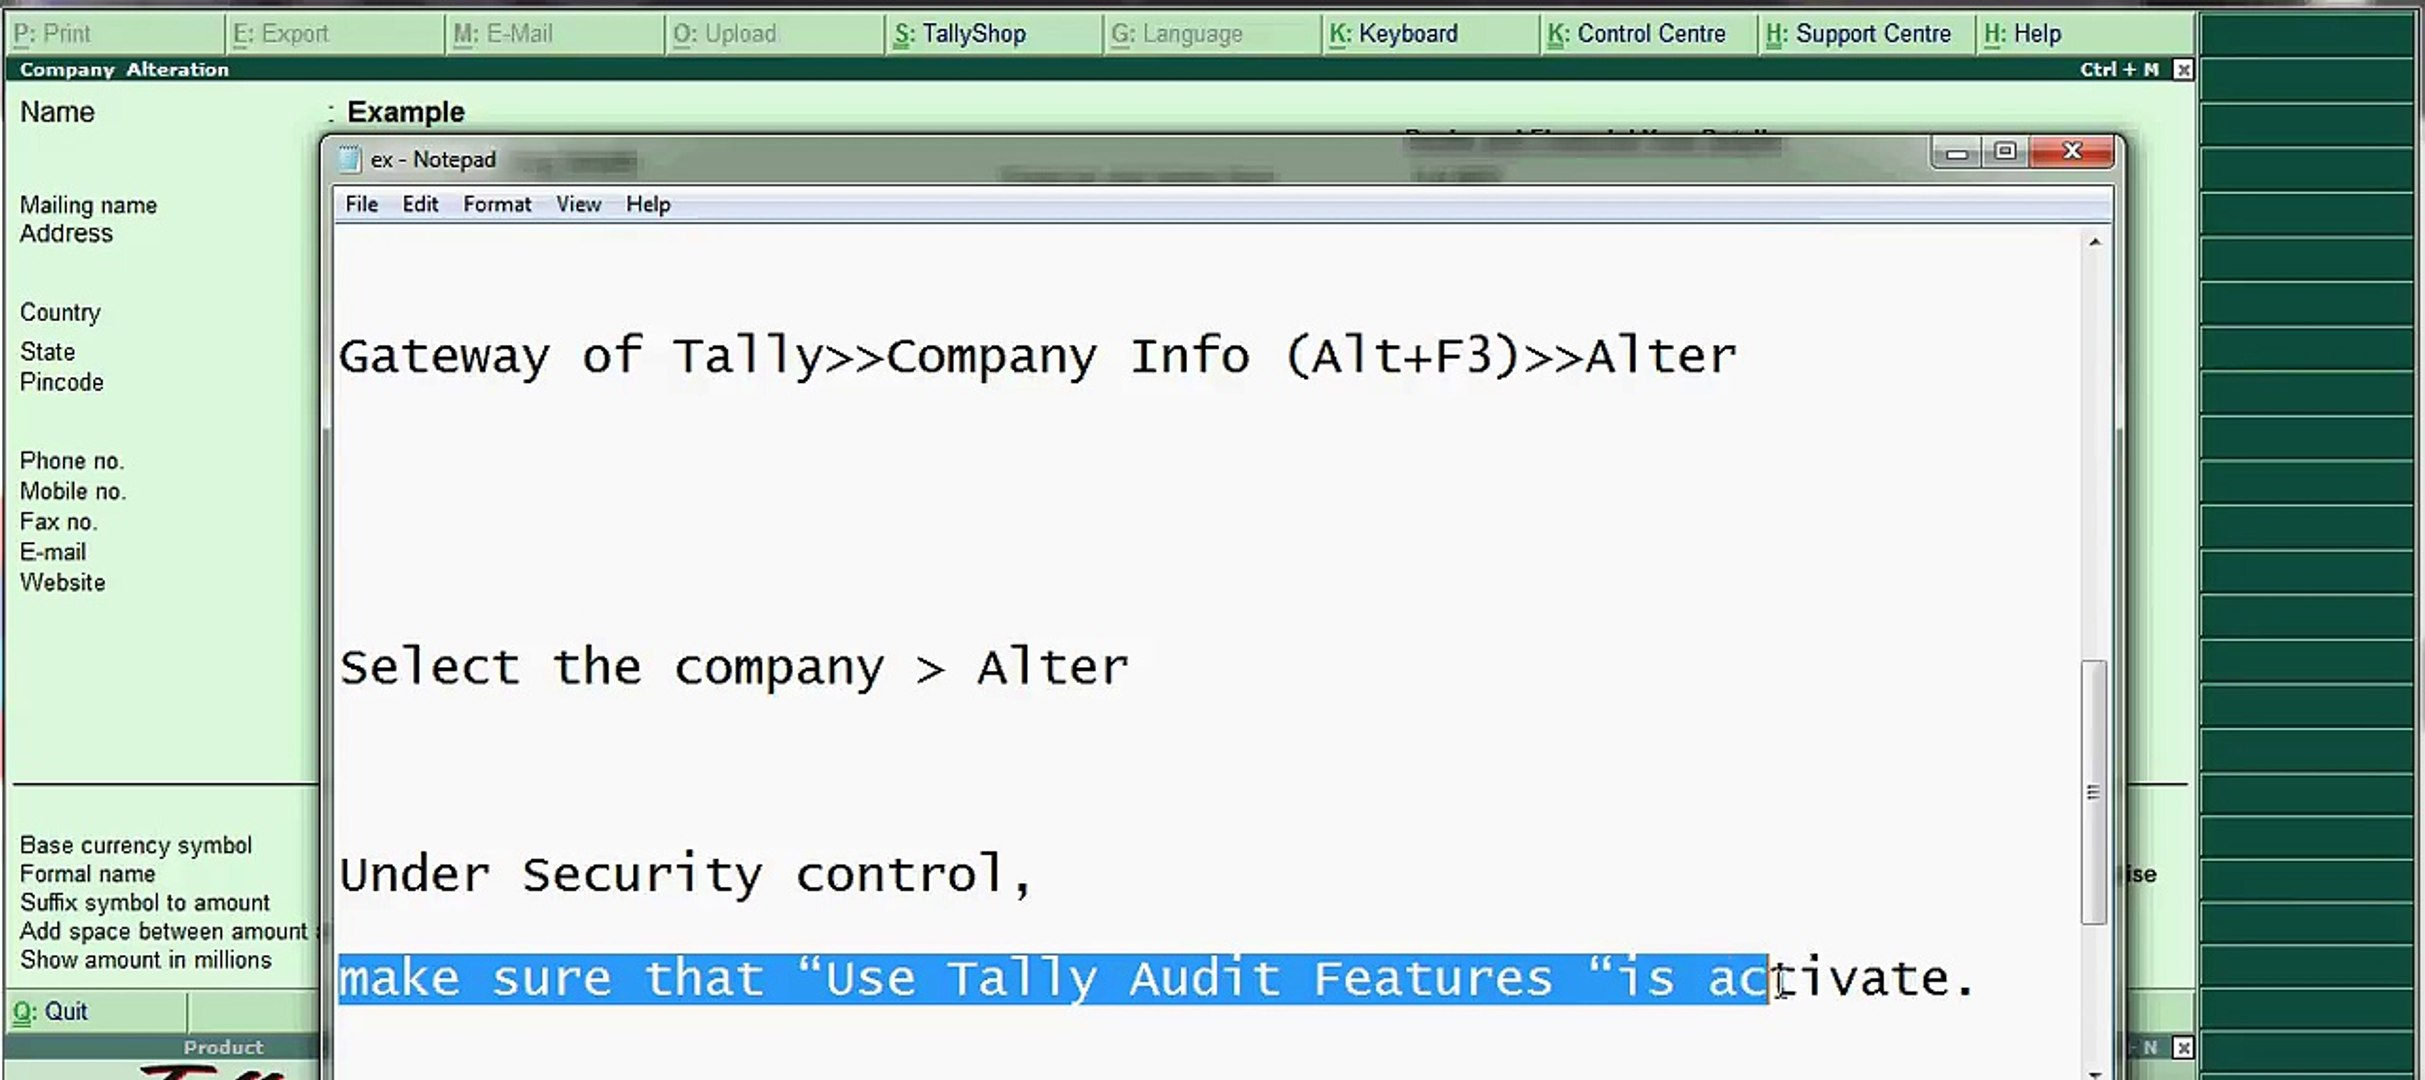 tally erp 7.2 crack download